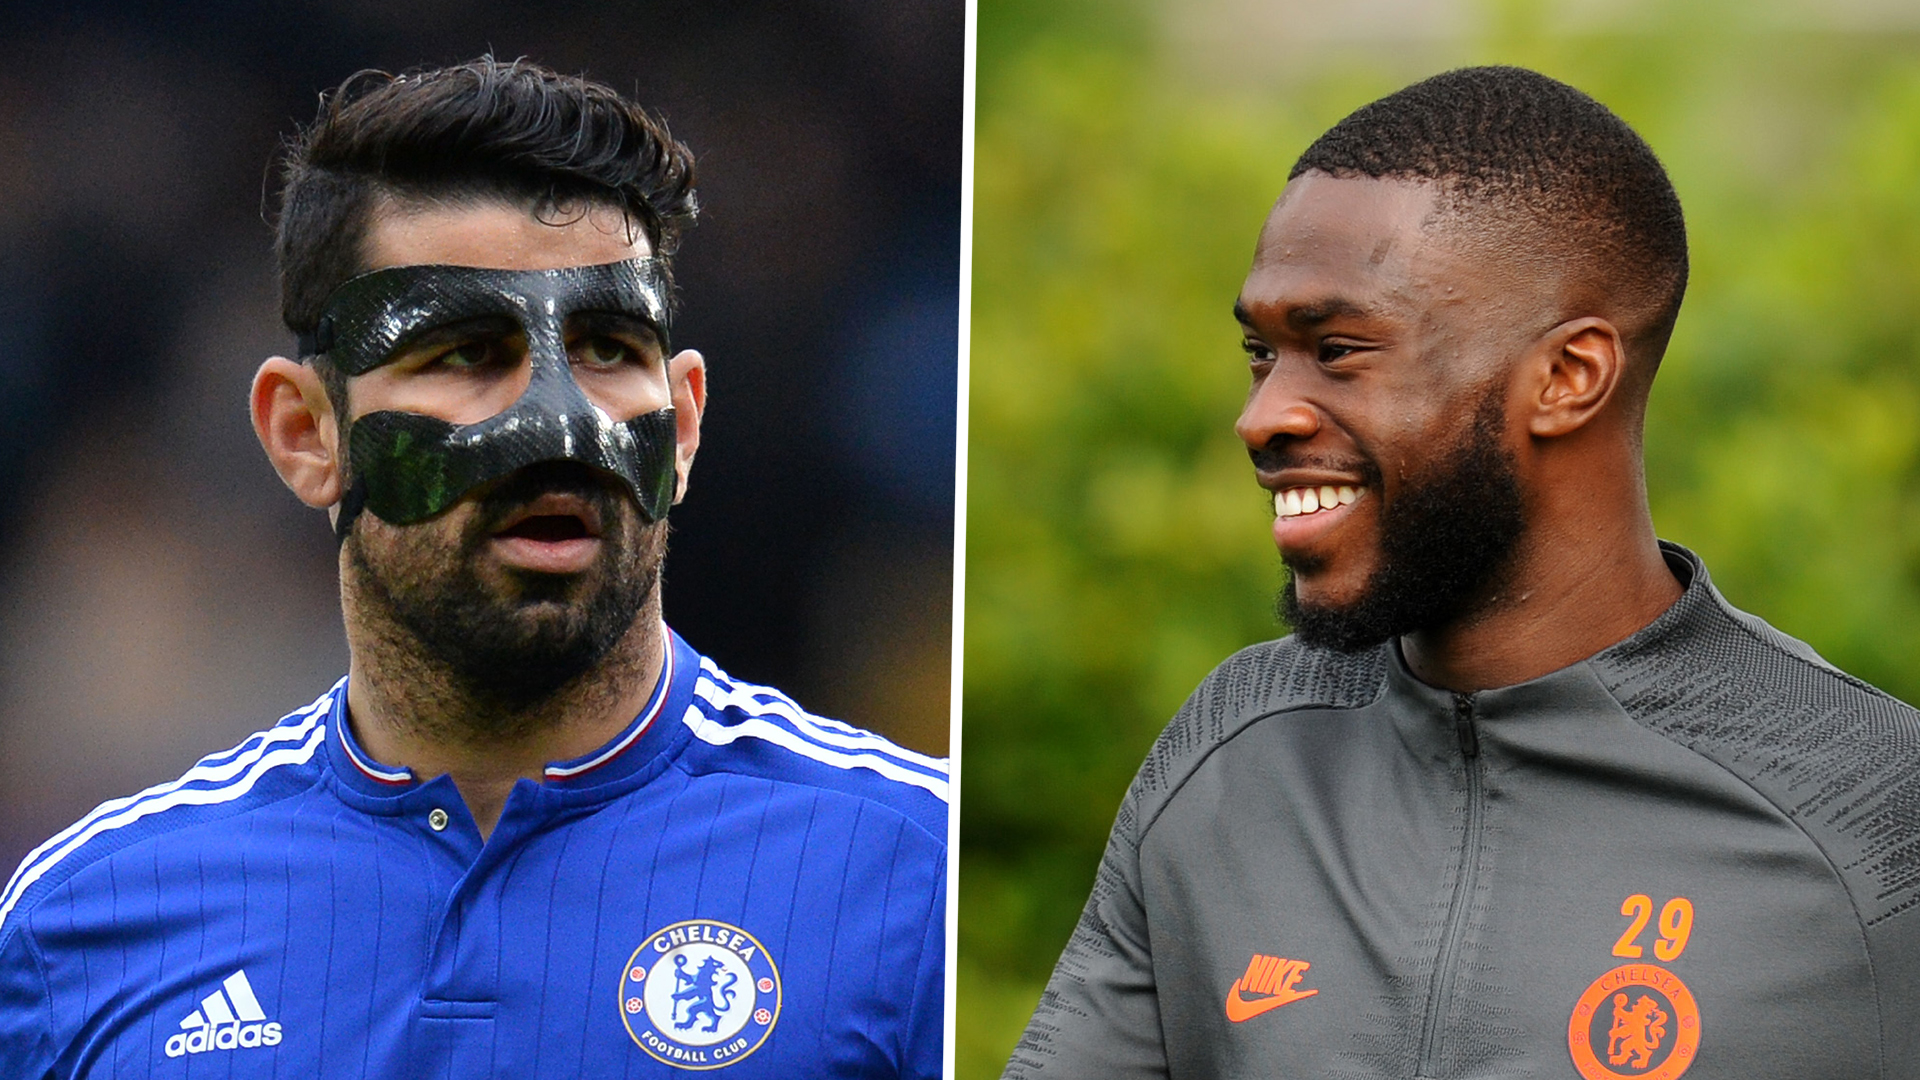 Chelsea defender Fikayo Tomori: The day I broke Diego Costa's nose